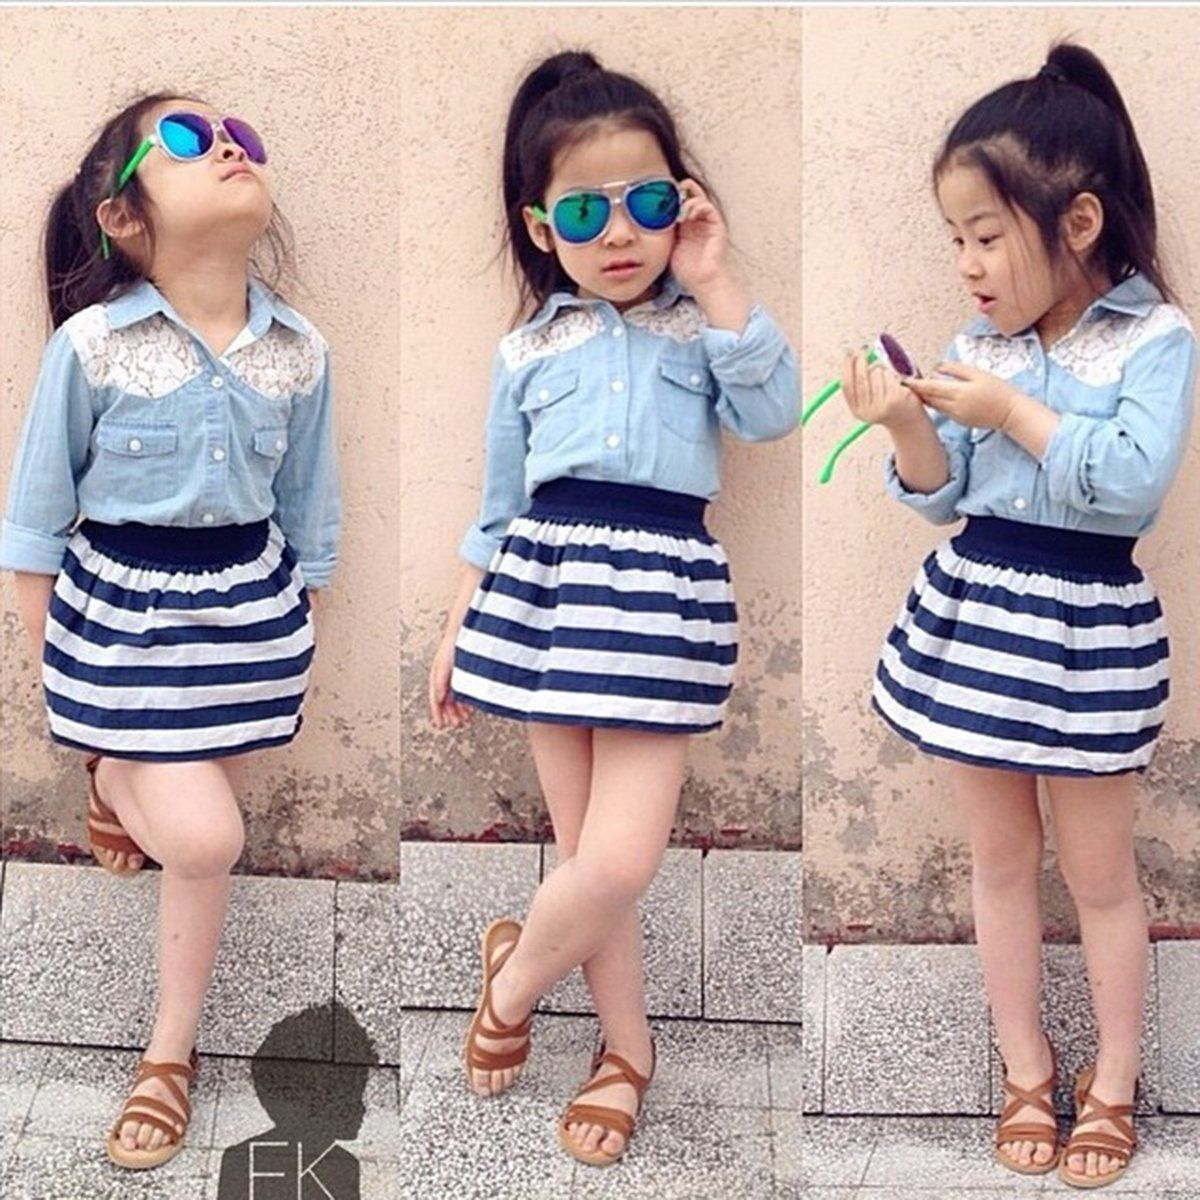 PUSEKY 2017 Summer Girl Clothing Sets 2pcs Toddler Baby Girls Summer Outfits Denim T-shirt Tops+Skirt Dress Kids Clothes Set кварцевые часы nixon sentry chrono black multi